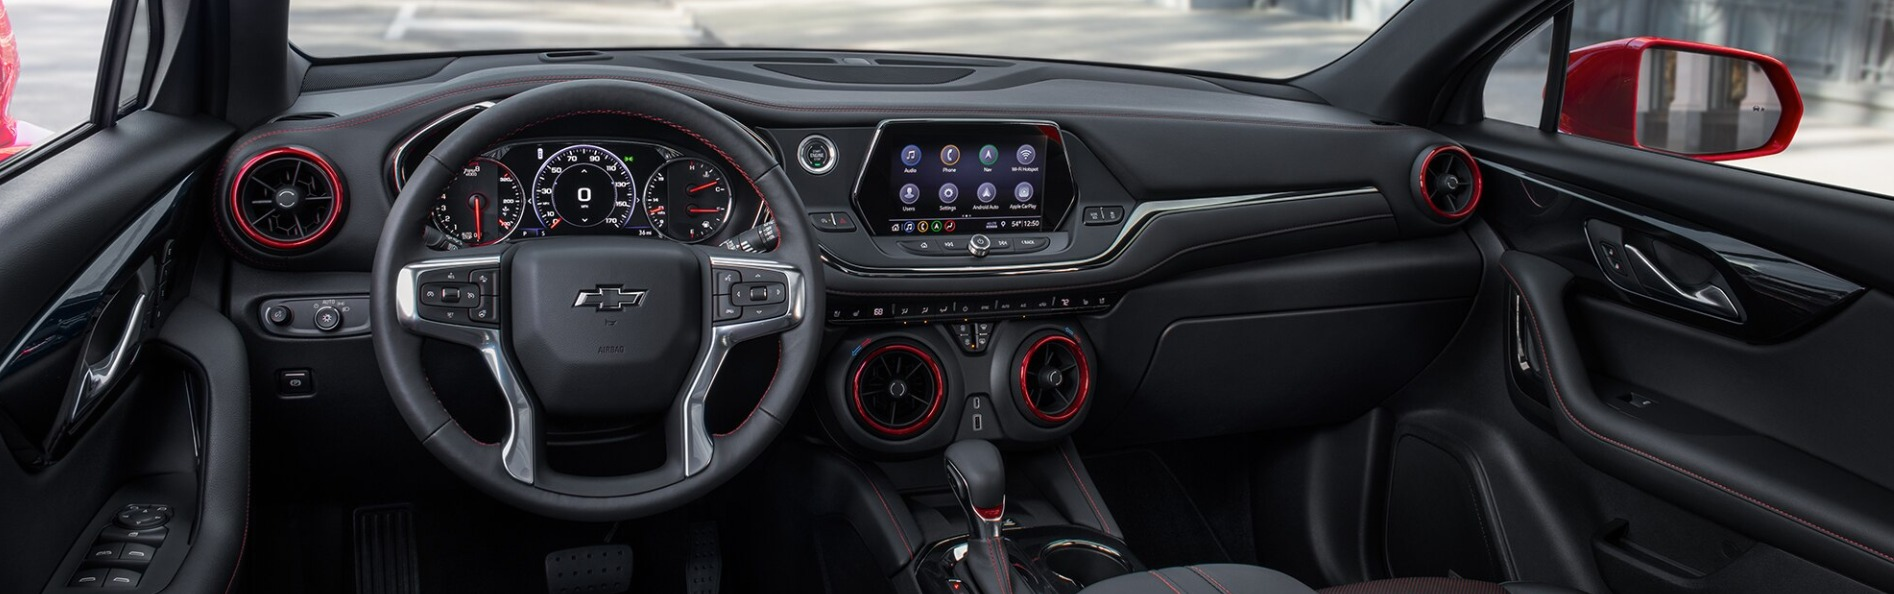 2020 Chevrolet Blazer Interior